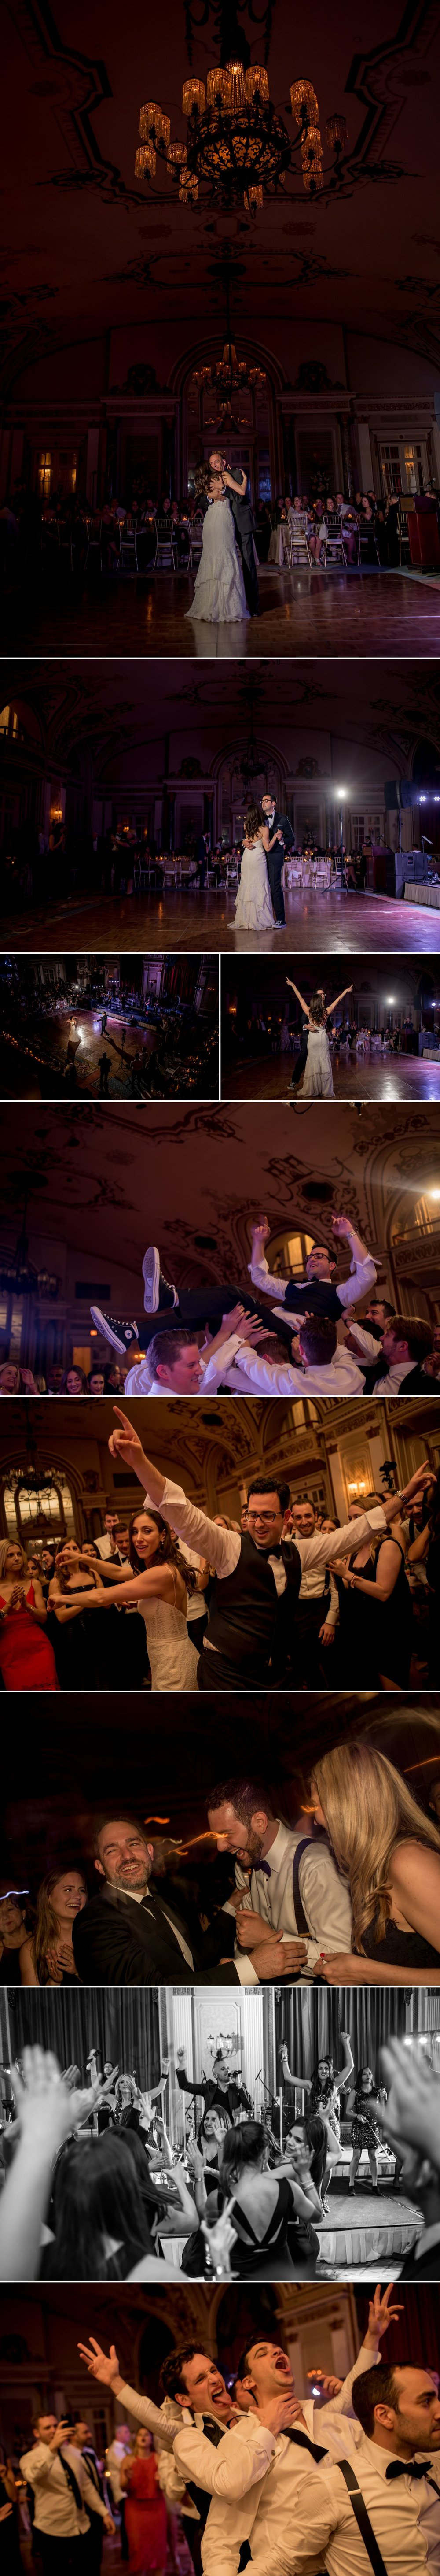 candid moments during a dance party at a jewish wedding reception at the chateau laurier ballroom in ottawa ontario